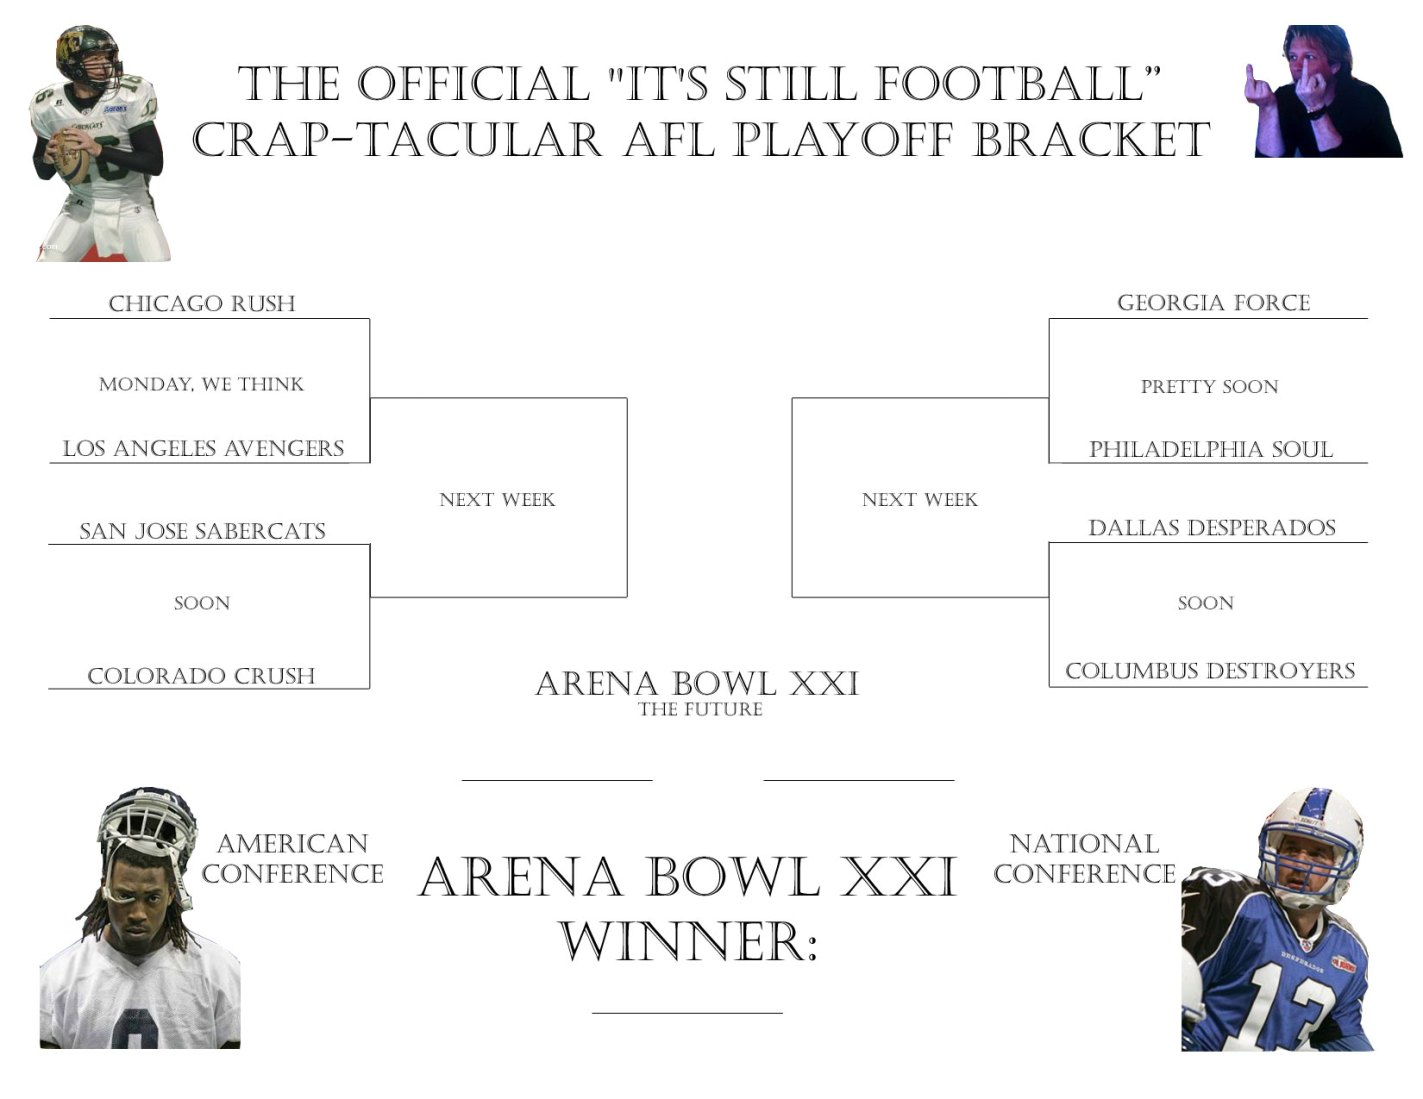 The Official ISF Arena Bowl XXI Bracket - it's Crap-Tacular!